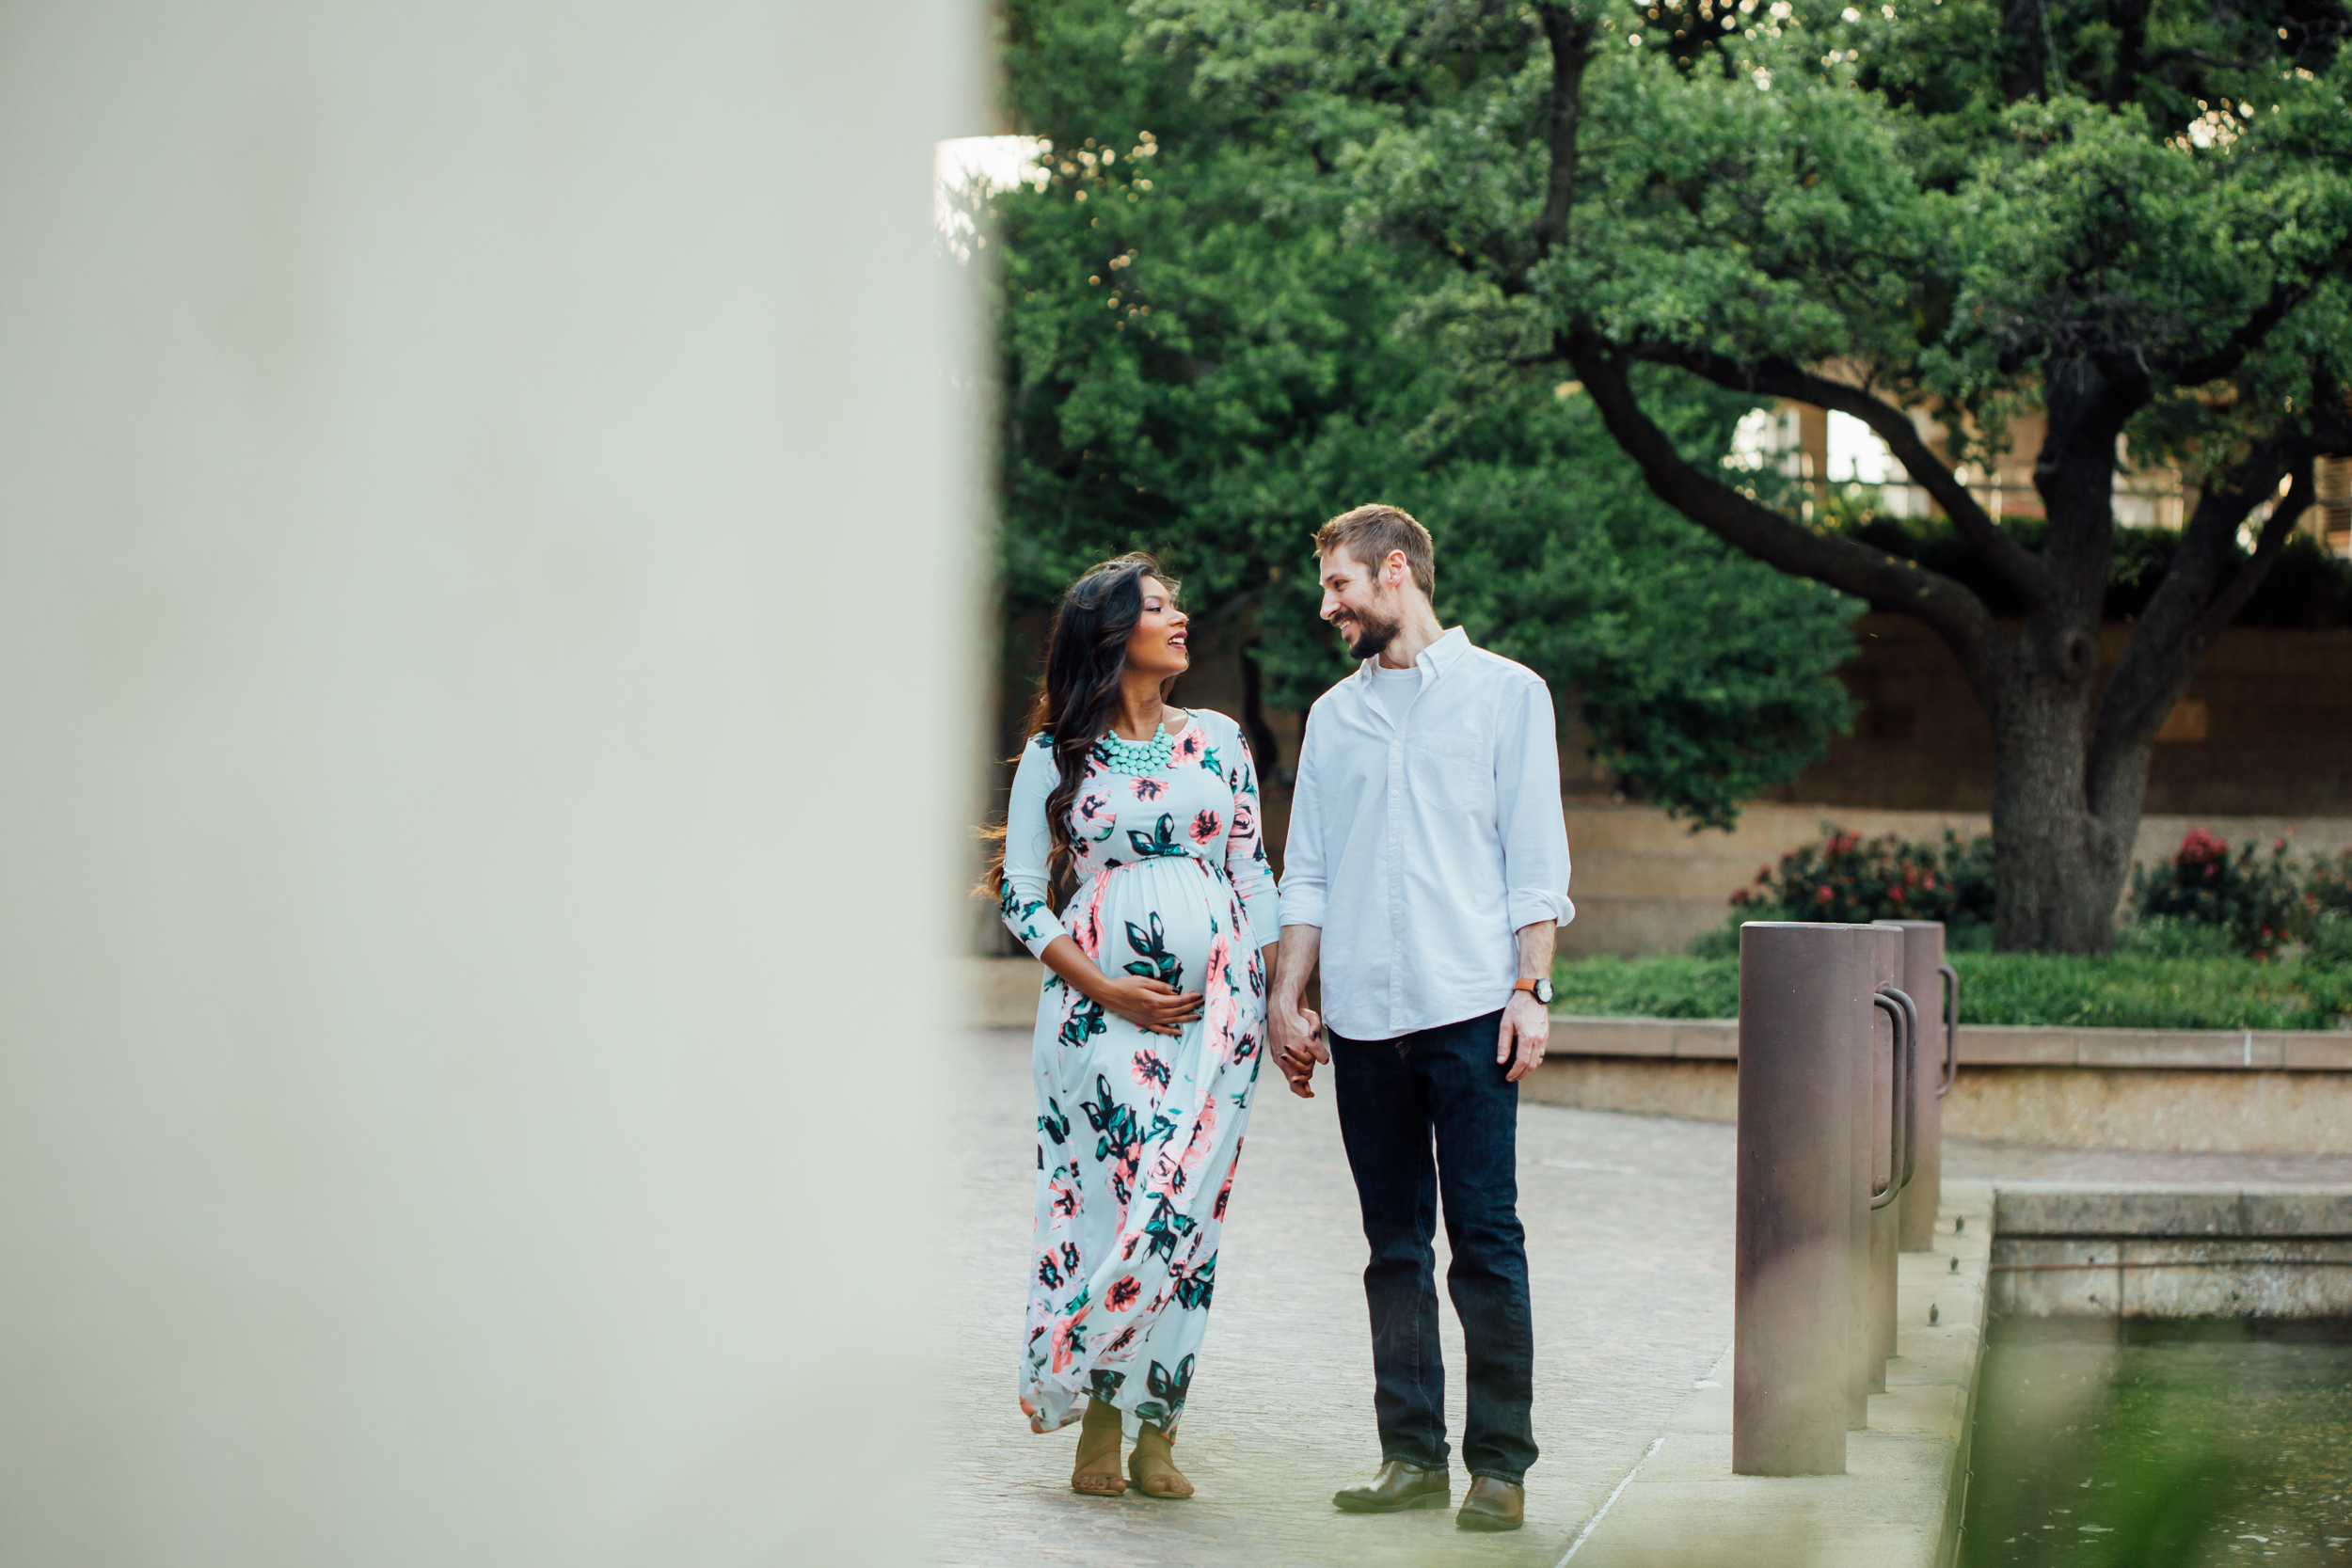 las colinas maternity portrait session